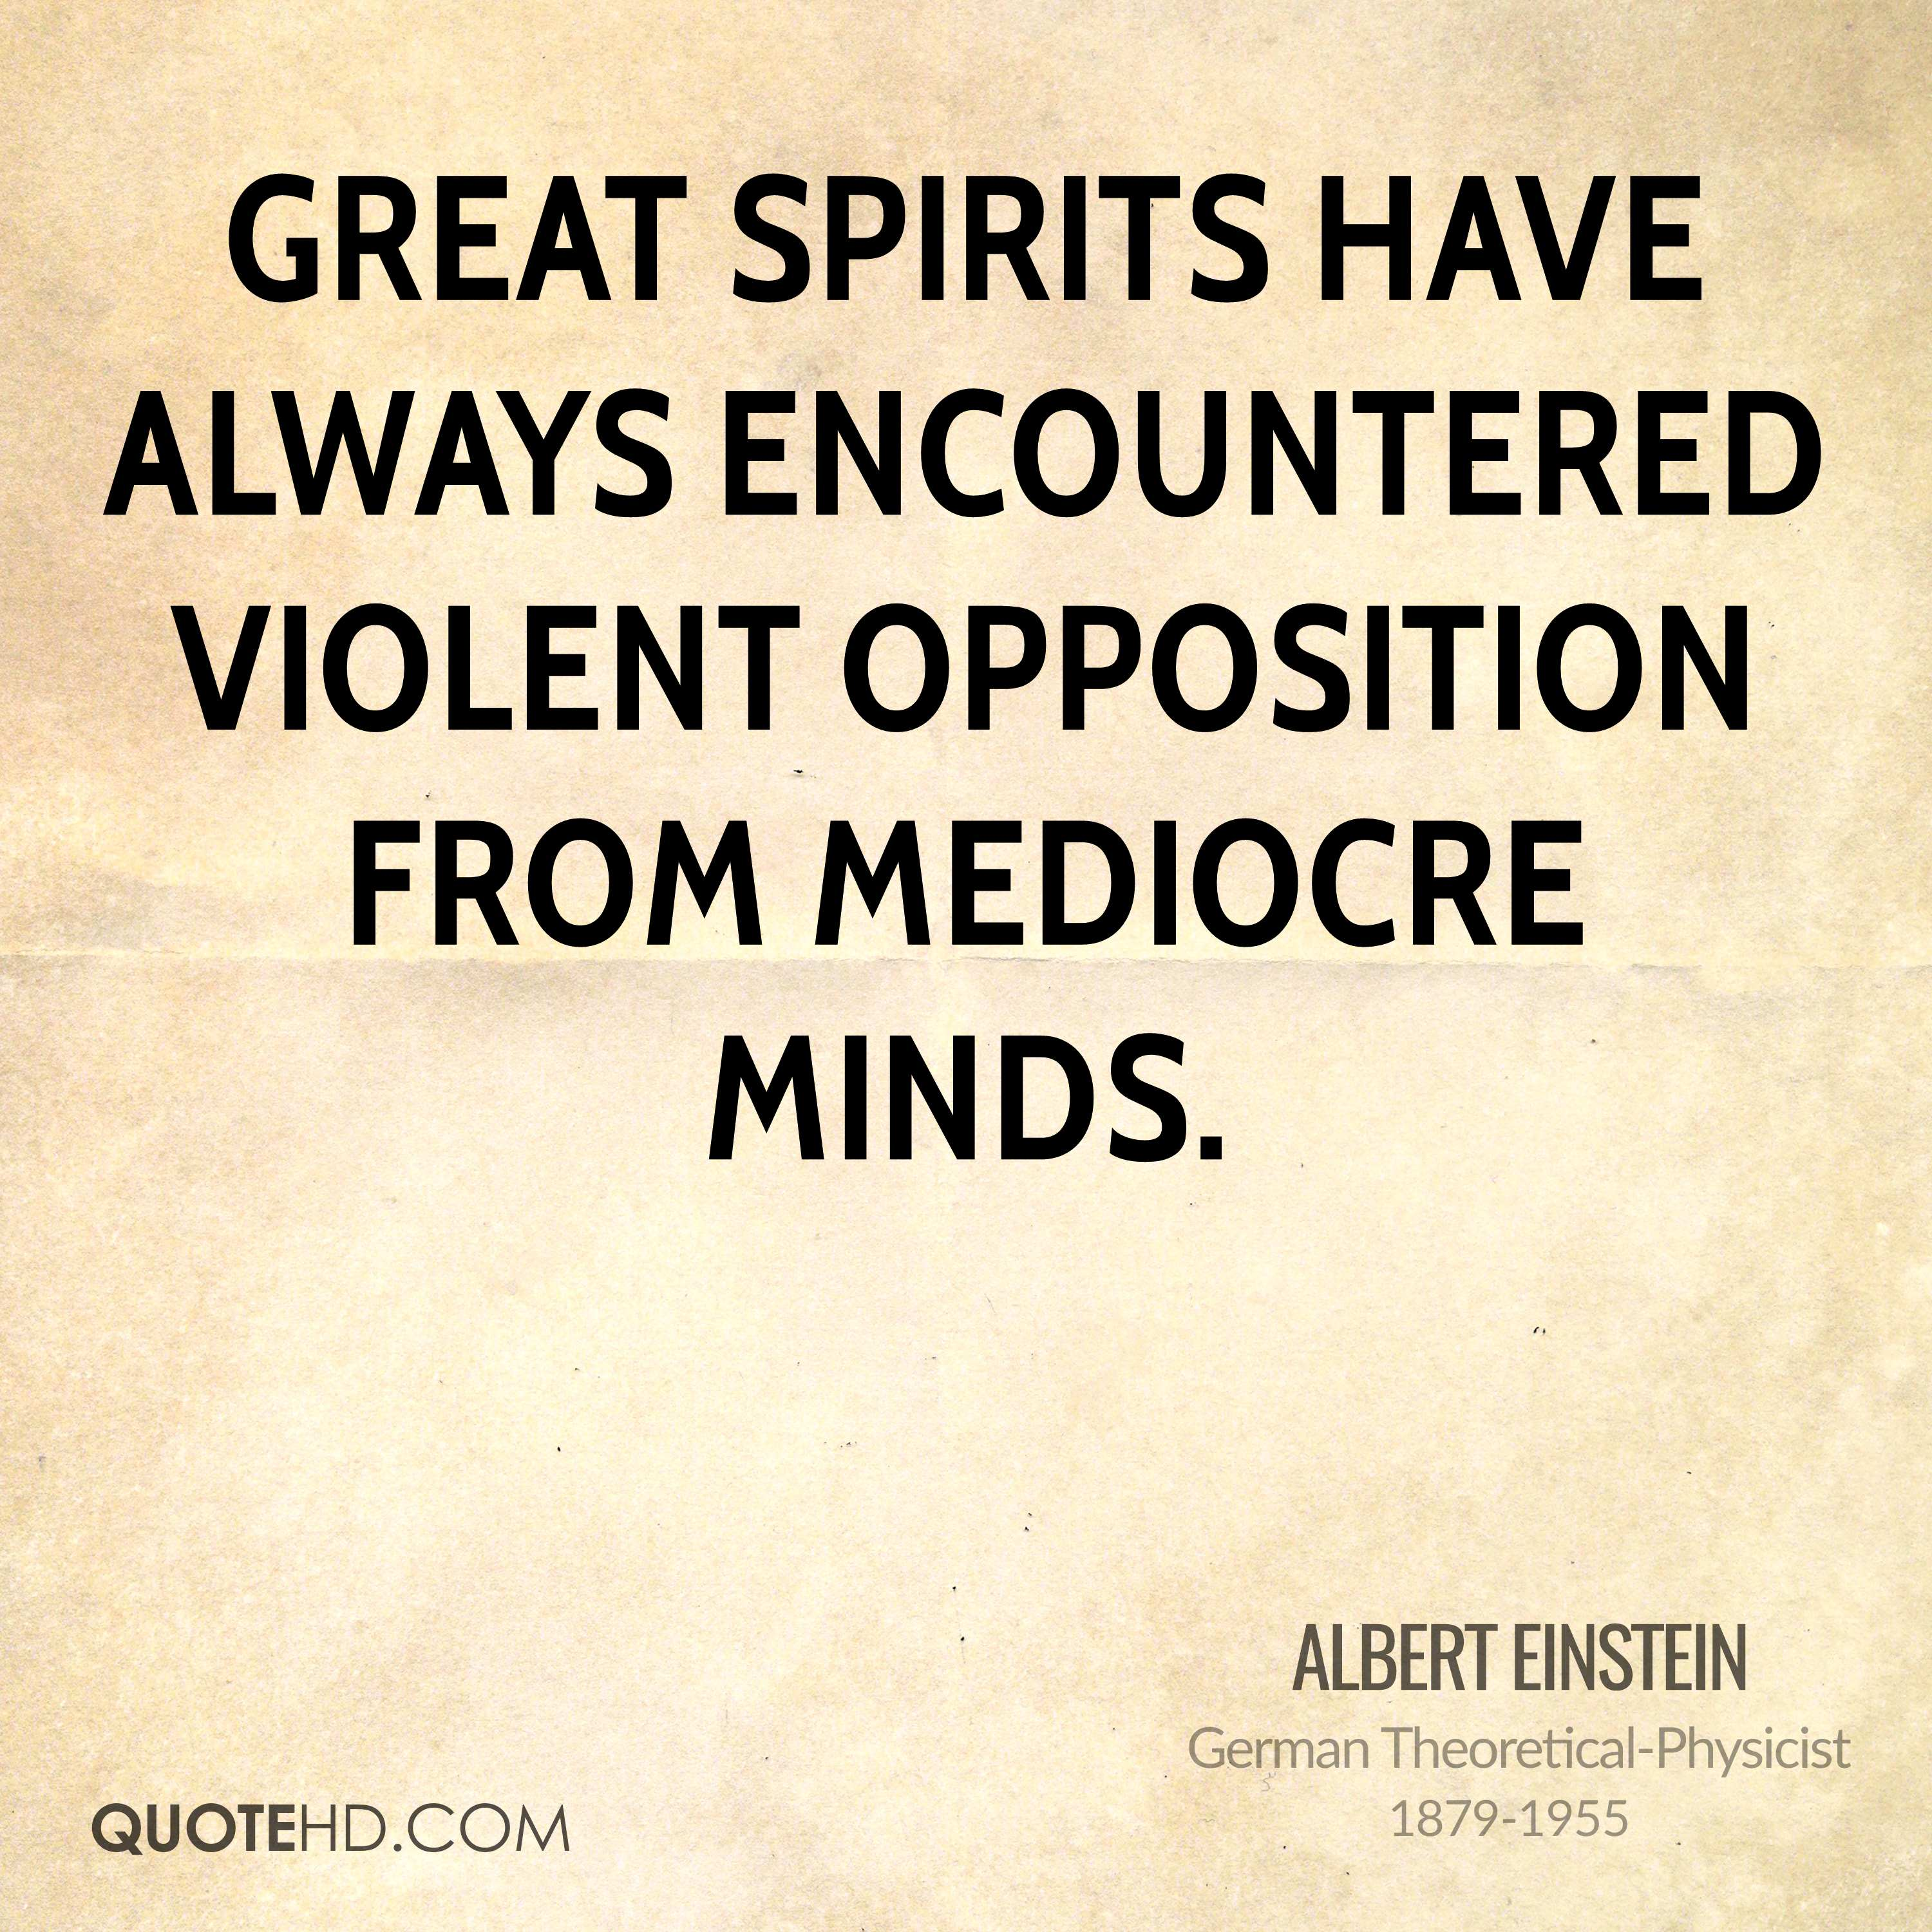 Great spirits have always encountered violent opposition from mediocre minds.